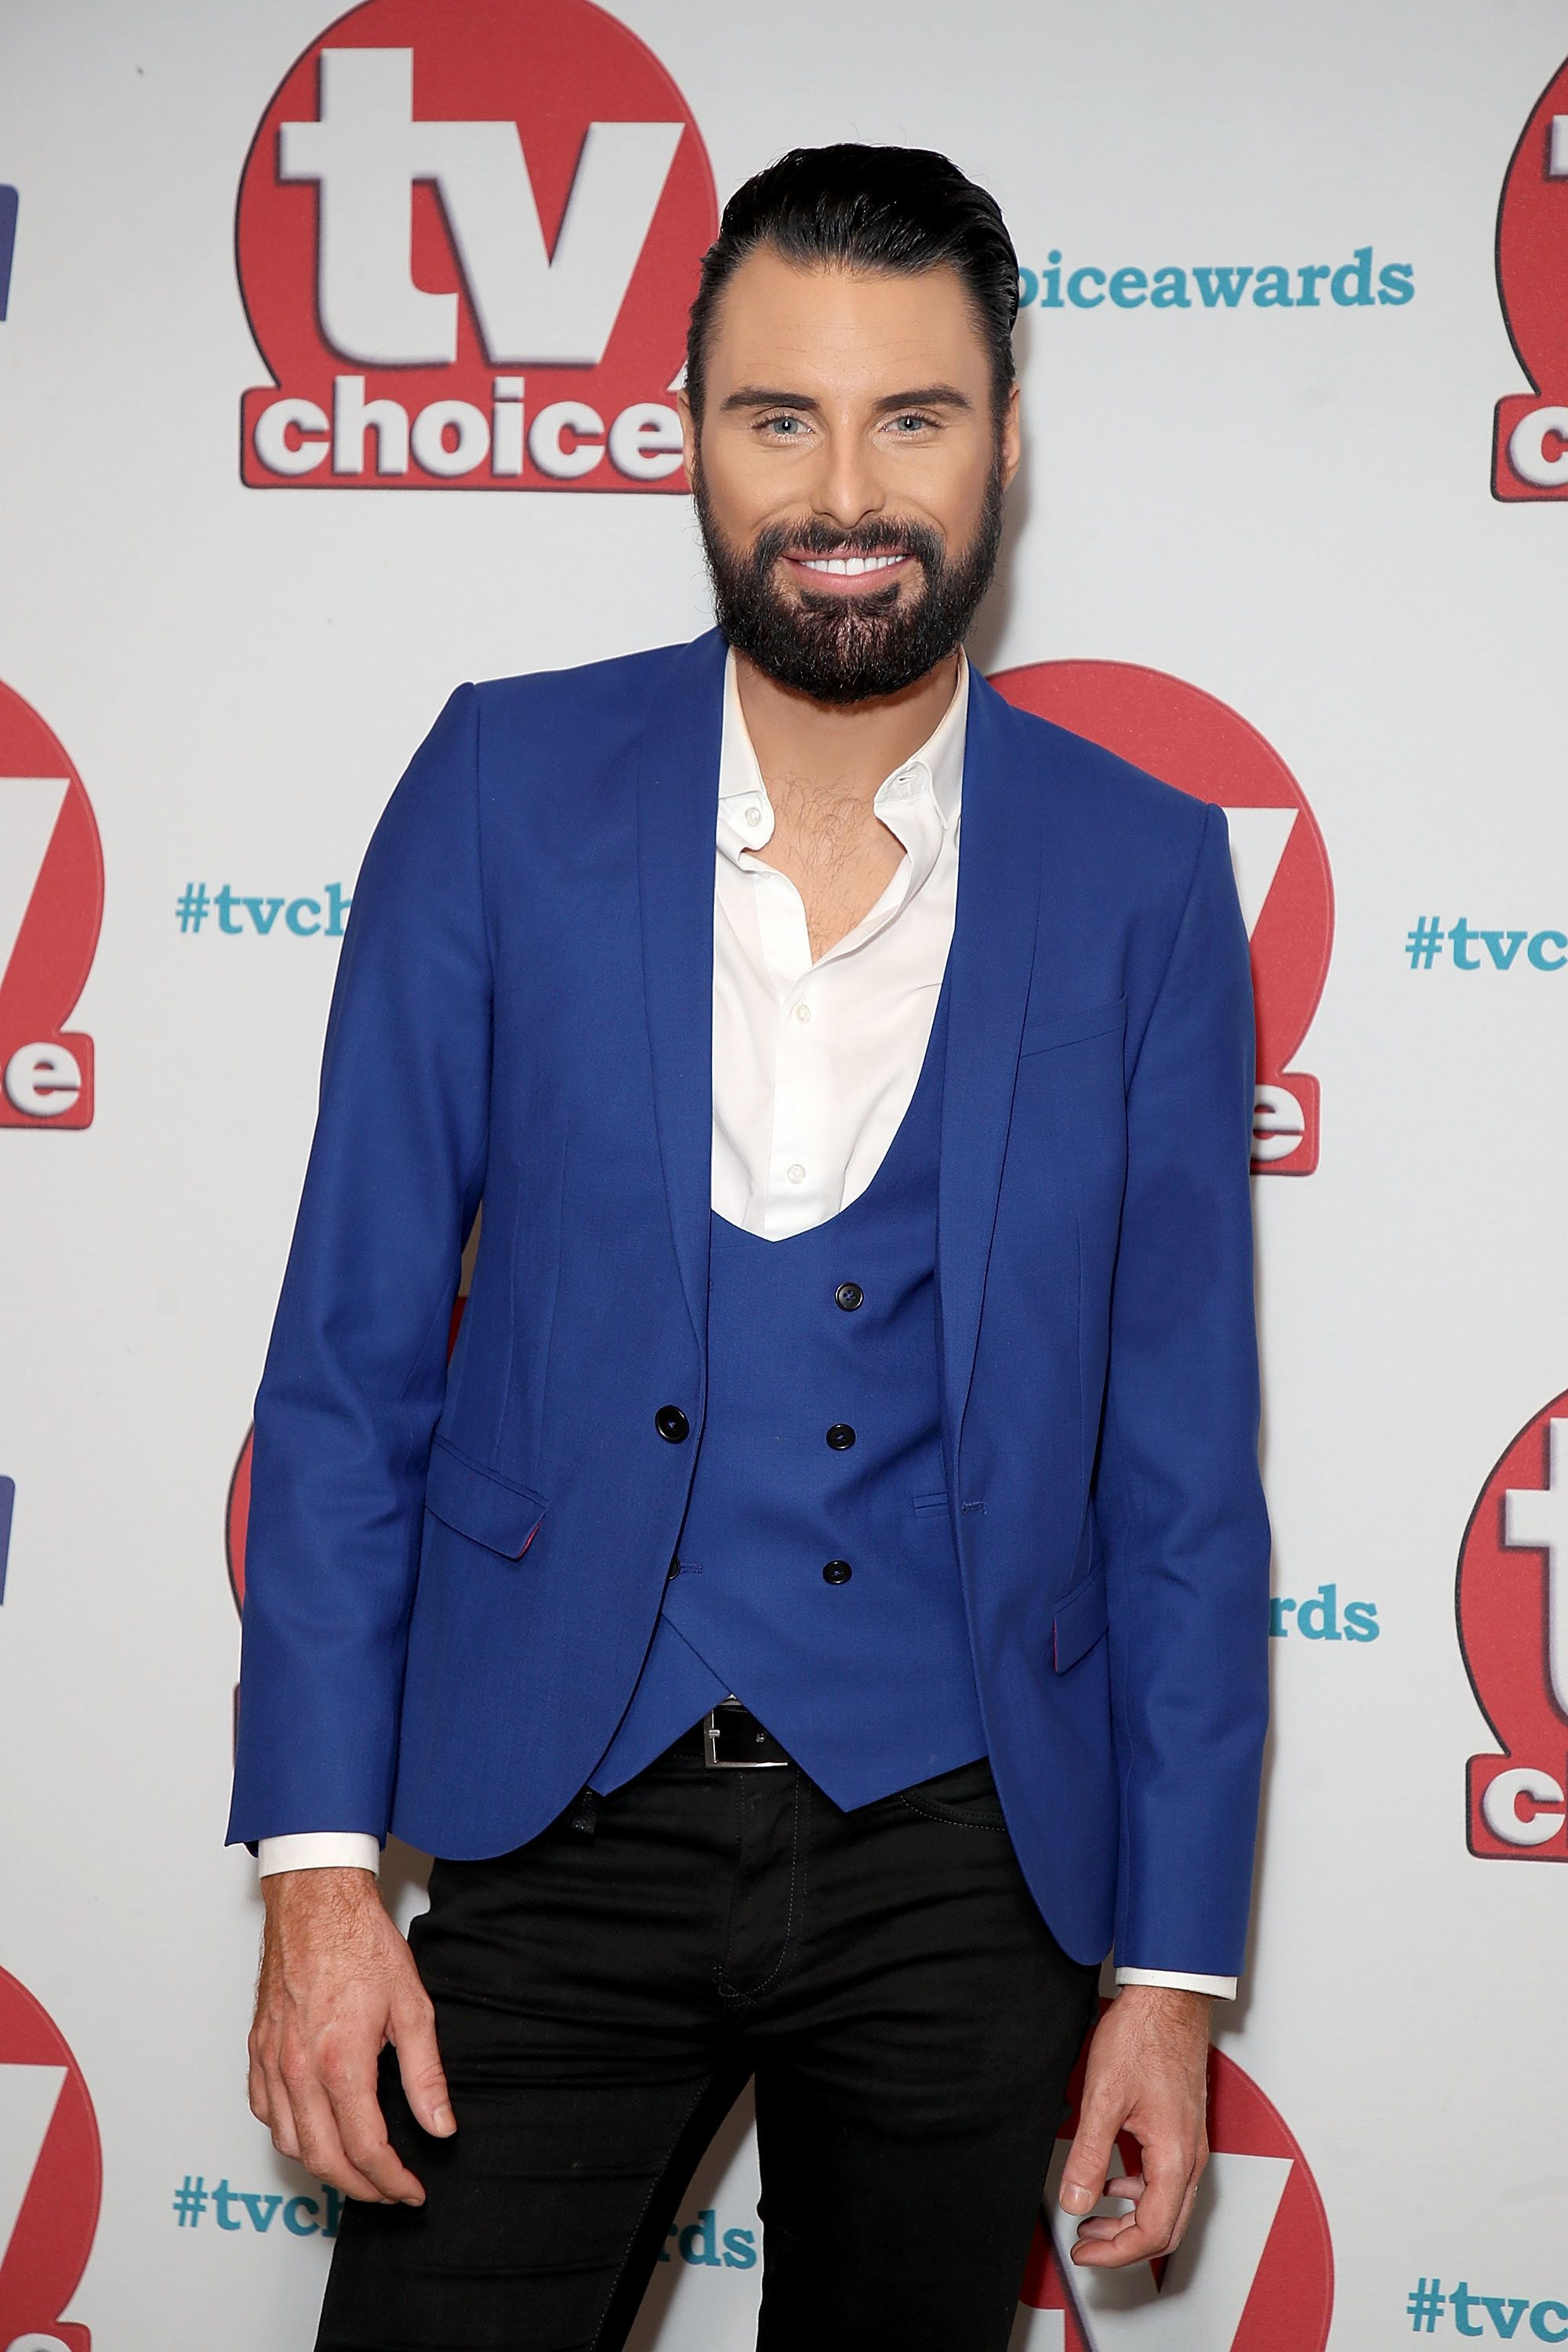 Rylan Clark-Neal Reveals Why He Thinks Channel 5 Would Be Wrong To Axe 'Big